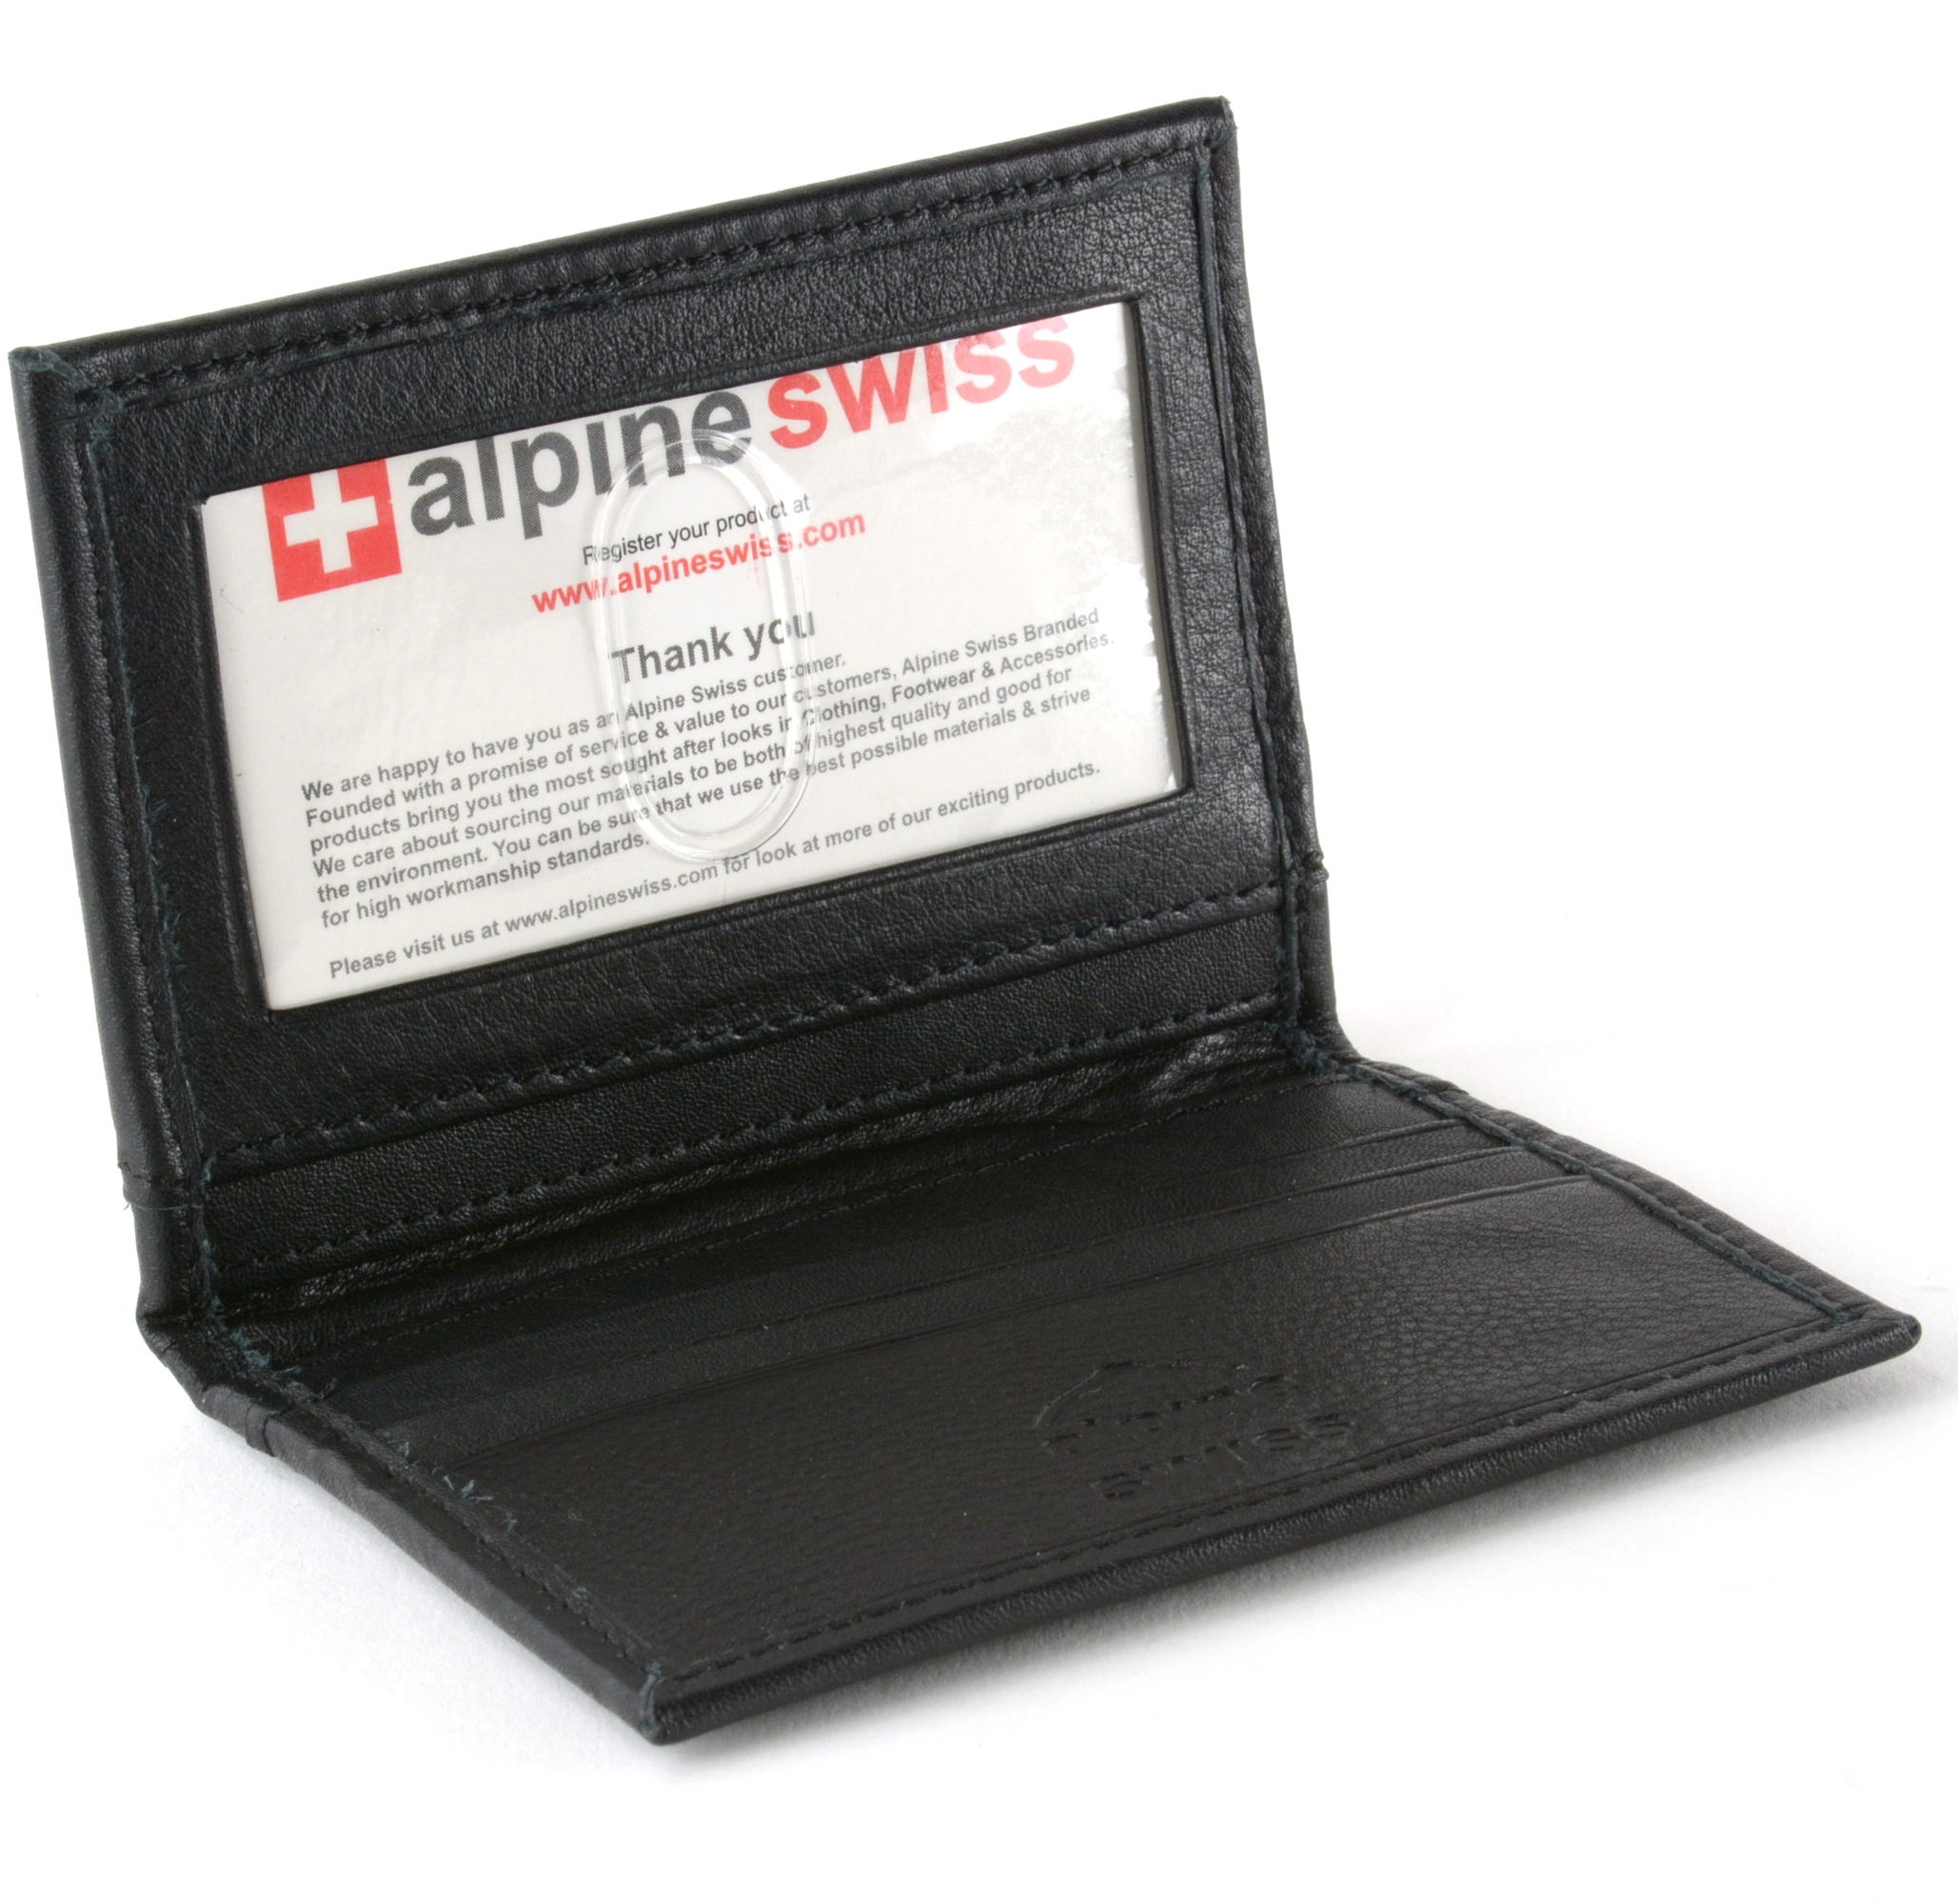 Alpine swiss thin front pocket wallet business card case 2 id window picture 13 of 20 colourmoves